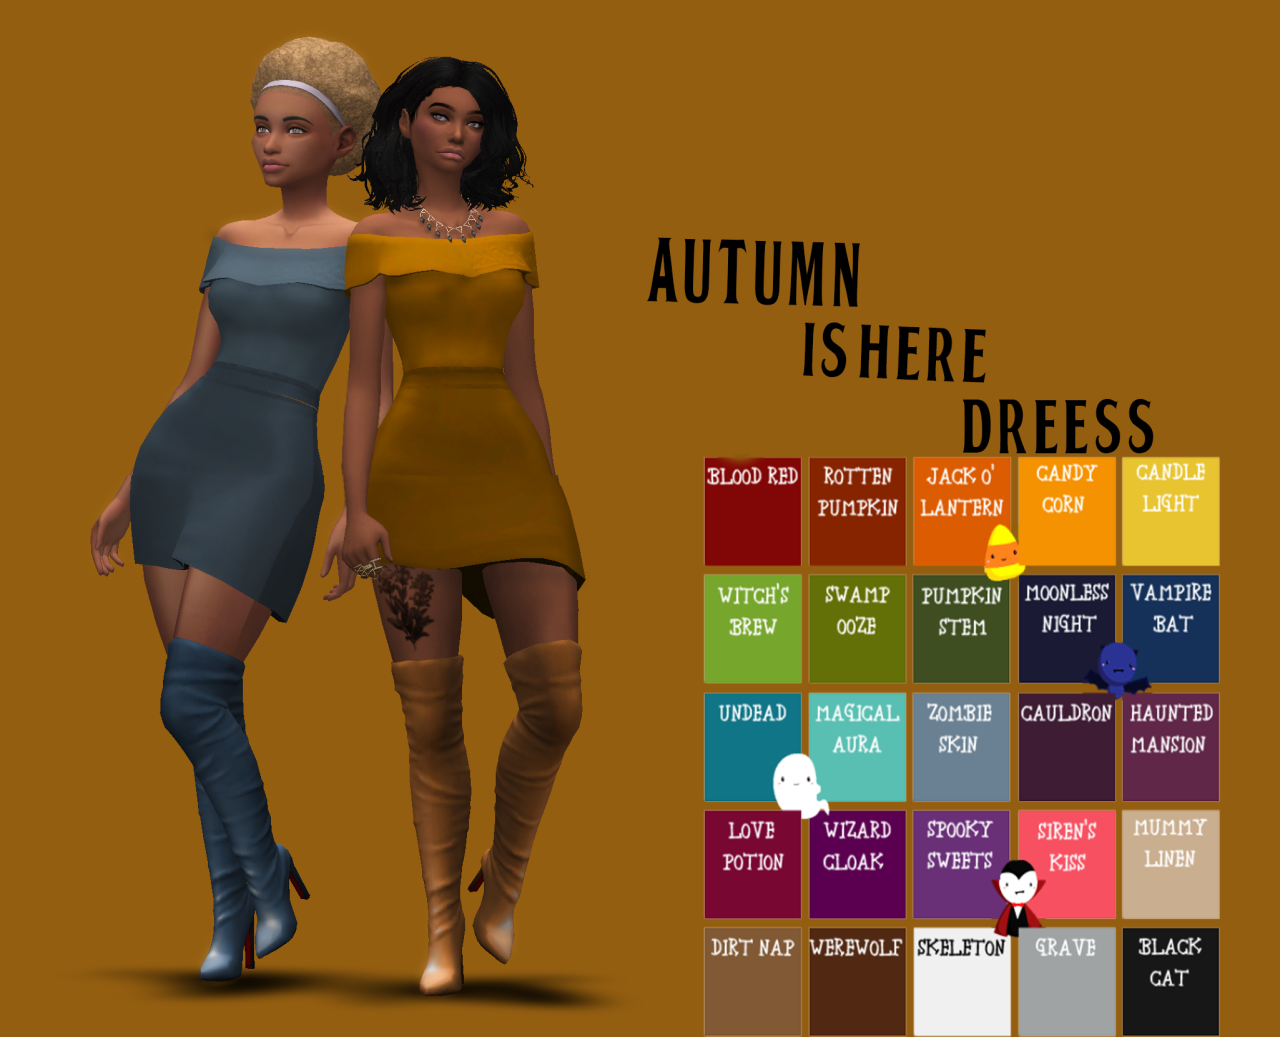 Autumn Dress by DaySims